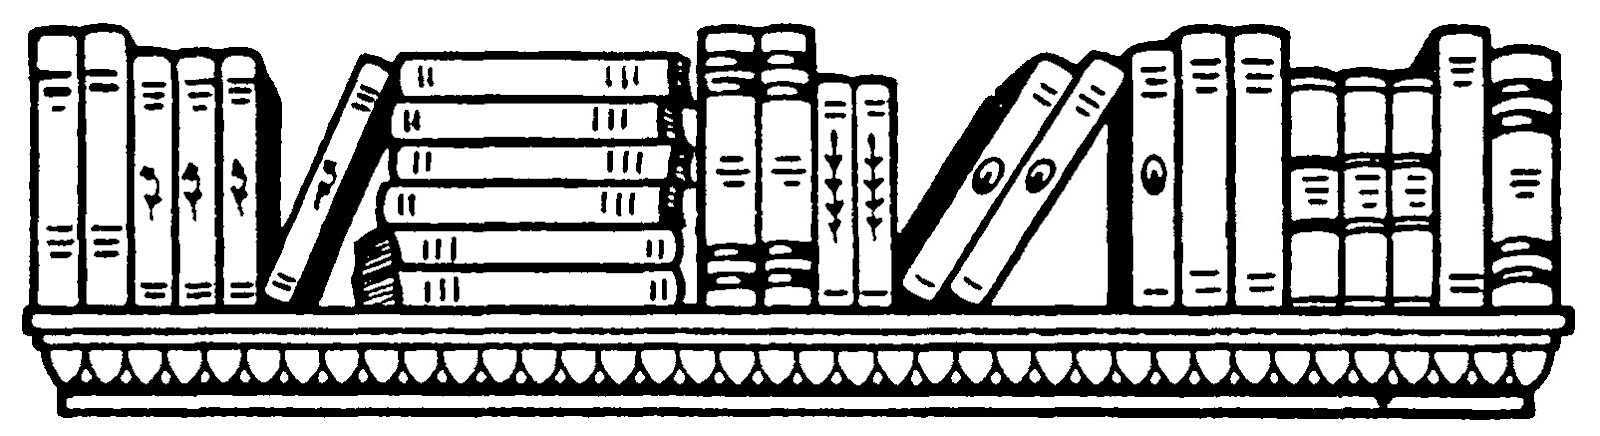 Bibliography clipart mystery book. Books reading scattered thoughts